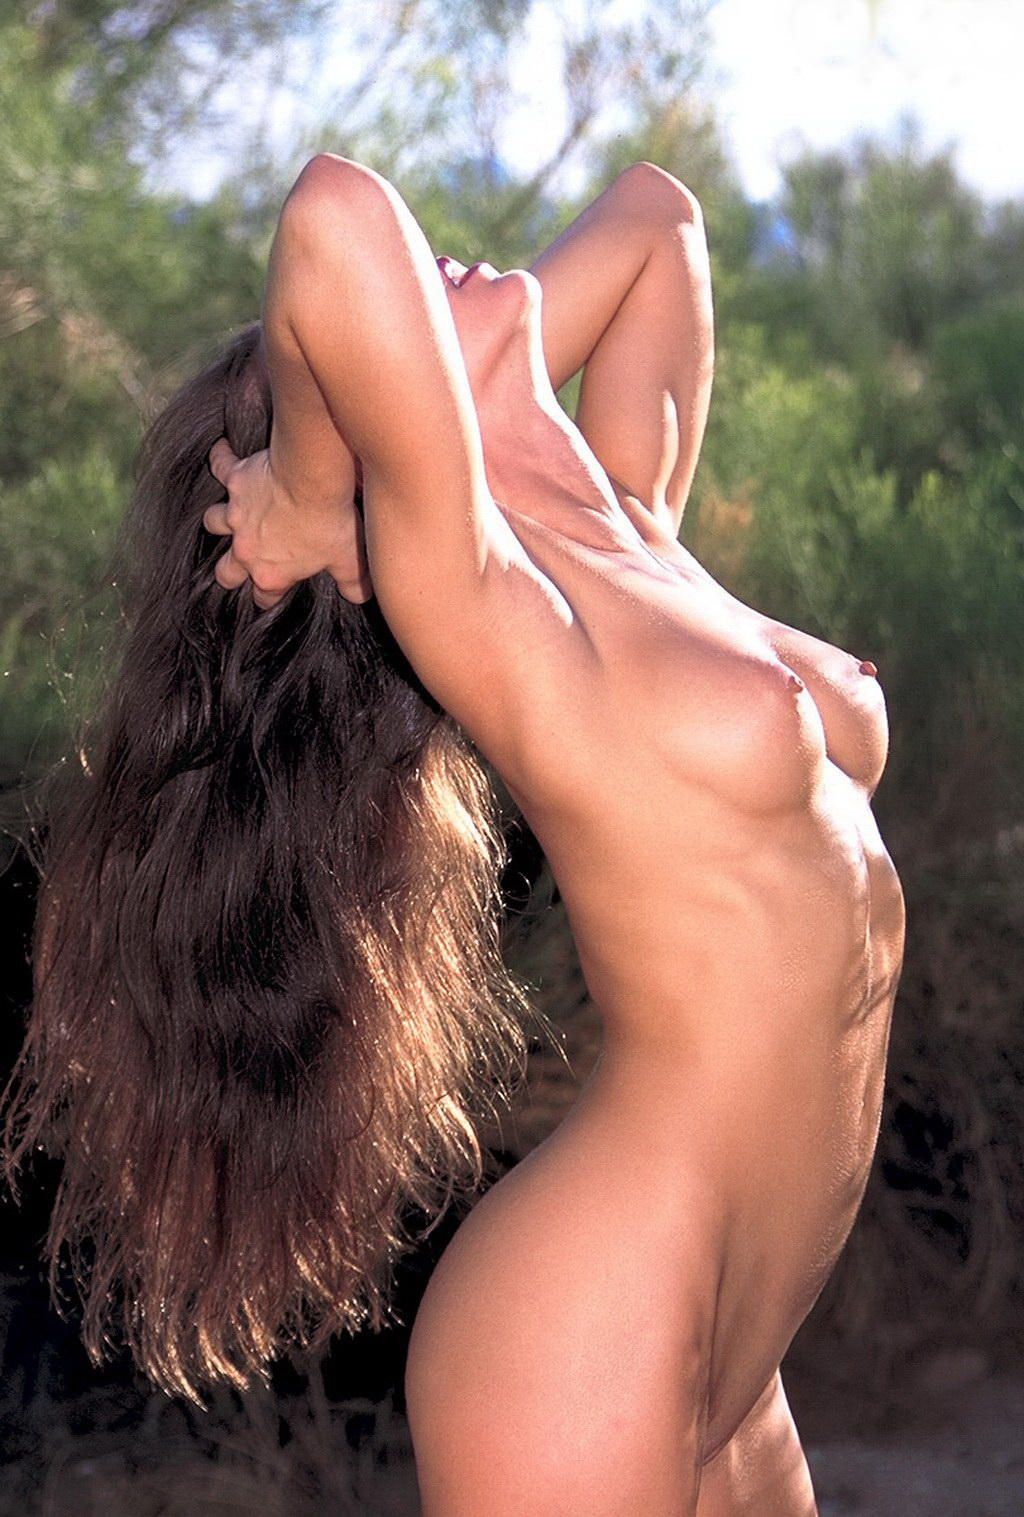 Nude Pics Of Mickie James 29